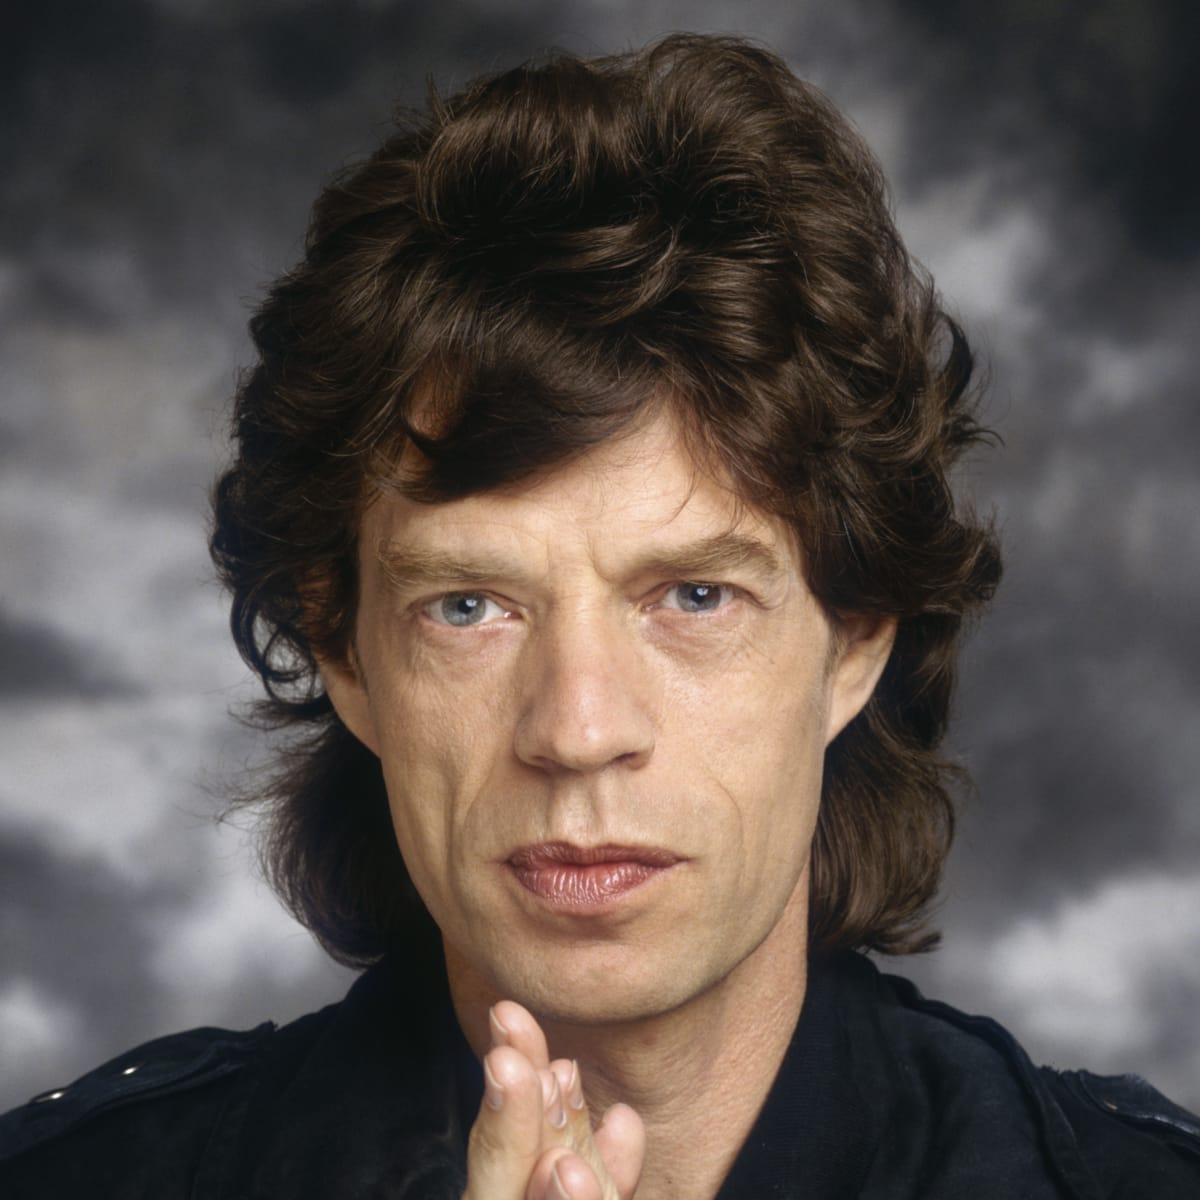 Mick Jagger Shook Thinking He Is Next To Die Amid Heart Problems And Upcoming Tour!